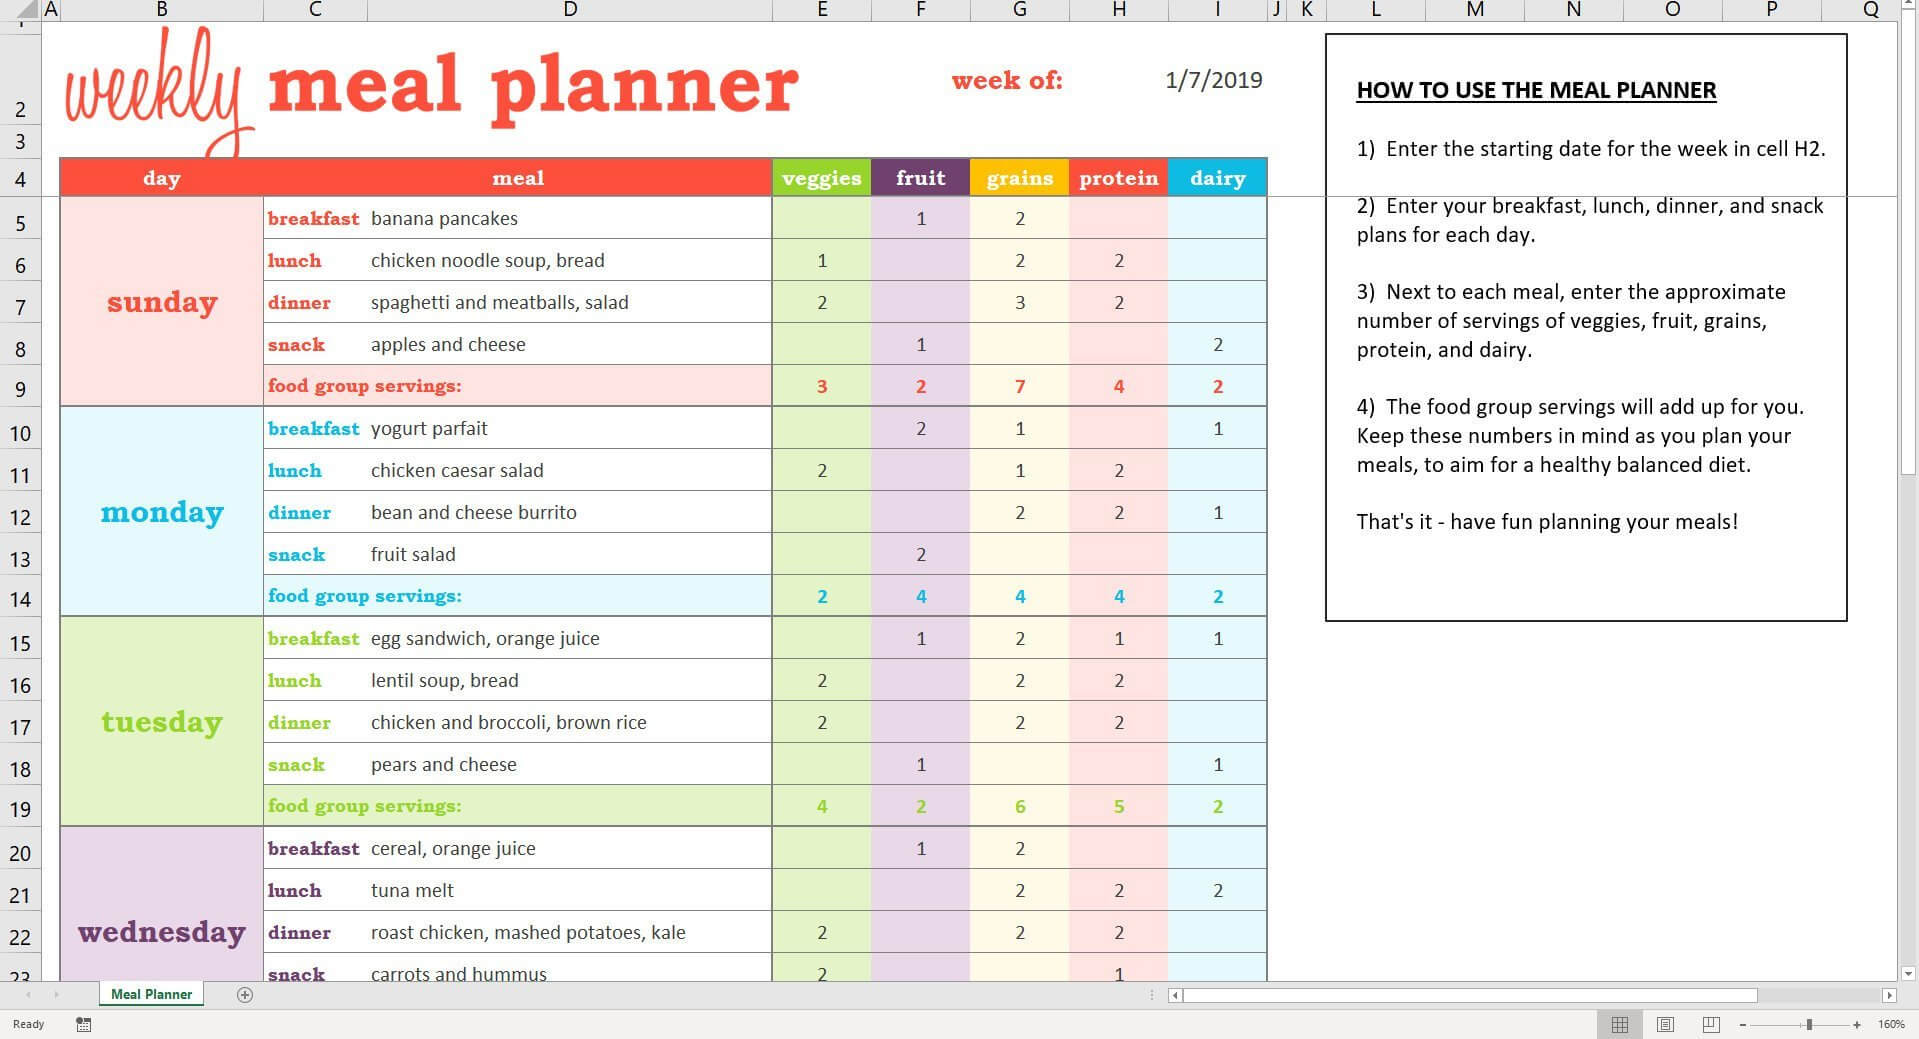 002 Meal Plan Excel Spreadsheet Il Fullxfull 1742755636 Fpg9 With 21 Day Fix Template